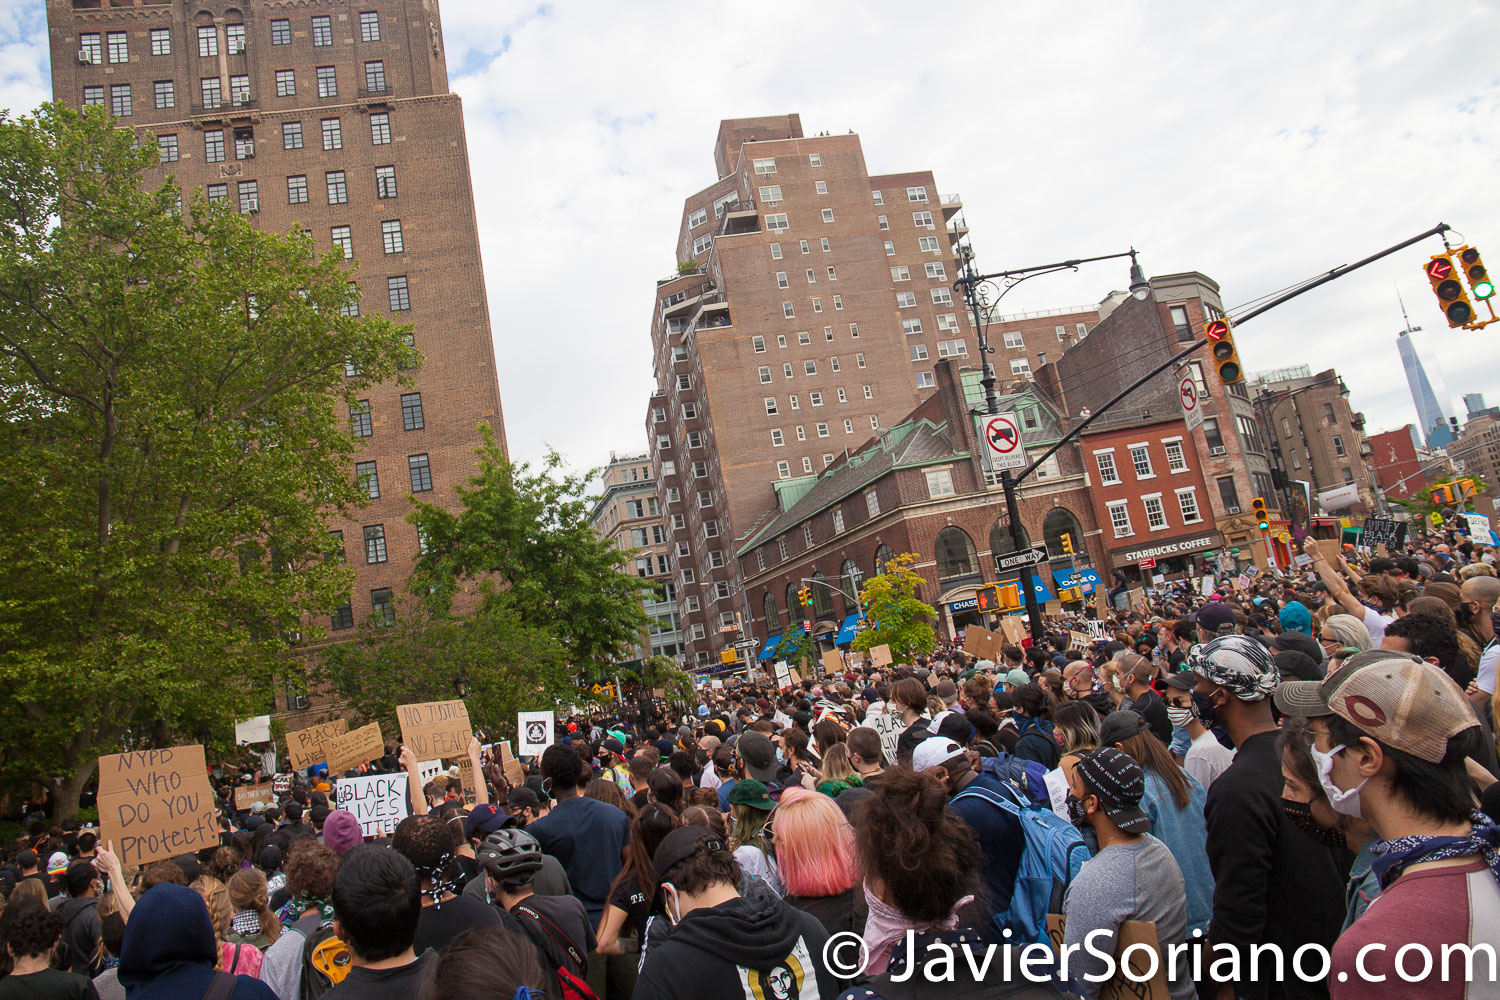 Tuesday, June 2, 2020. New York City - Rally in front of The Stonewall Inn in Manhattan to demand justice for George Floyd, Breonna Taylor, and too many others victims of police violence in the United States of America. Photo by Javier Soriano/www.JavierSoriano.com